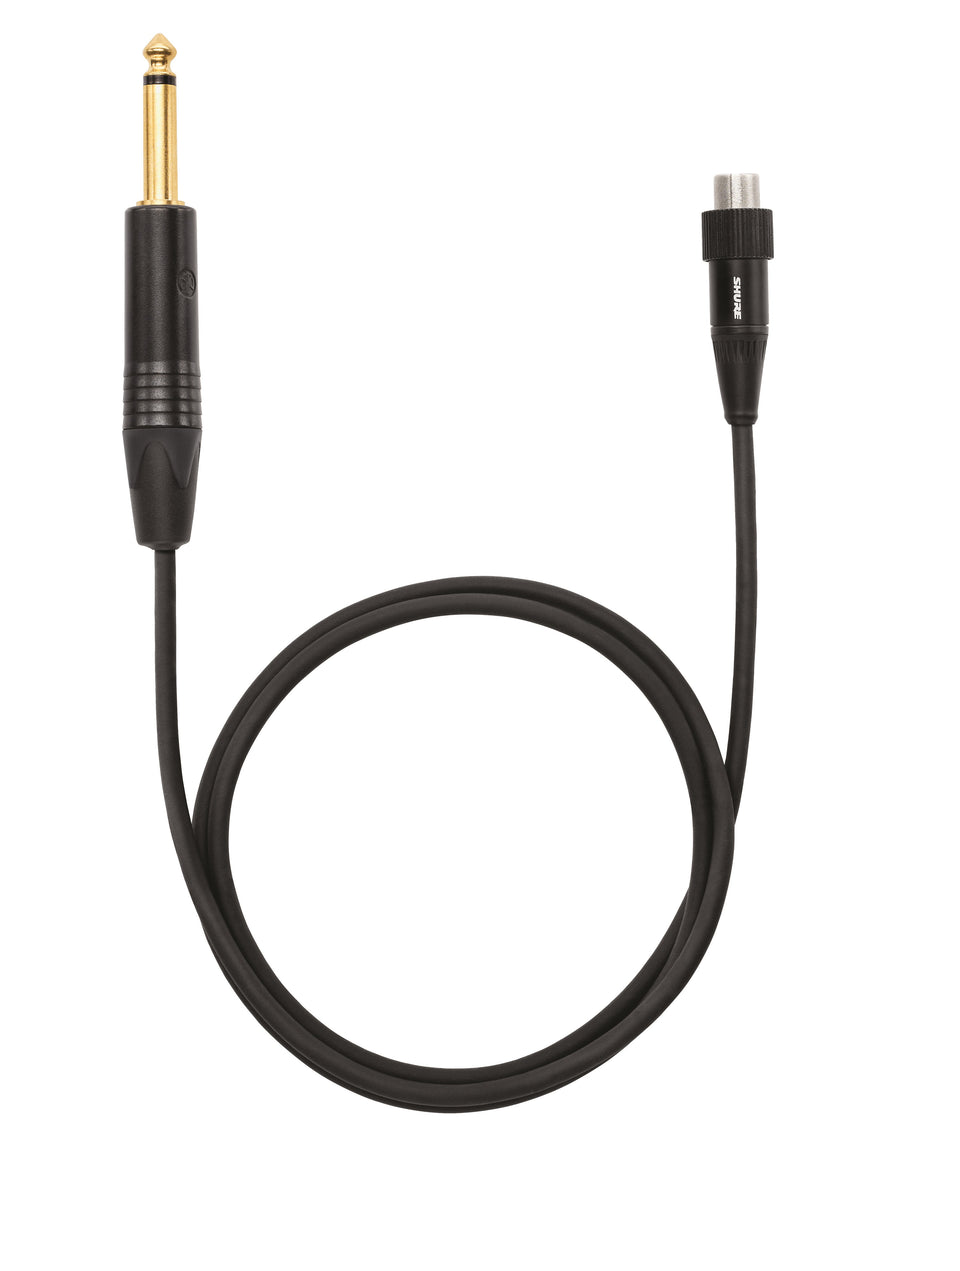 "Shure WA305 Premium 1/4""-to-TA4F Guitar Cable With Locking Thread For Select Shure Bodypack Transmitters"